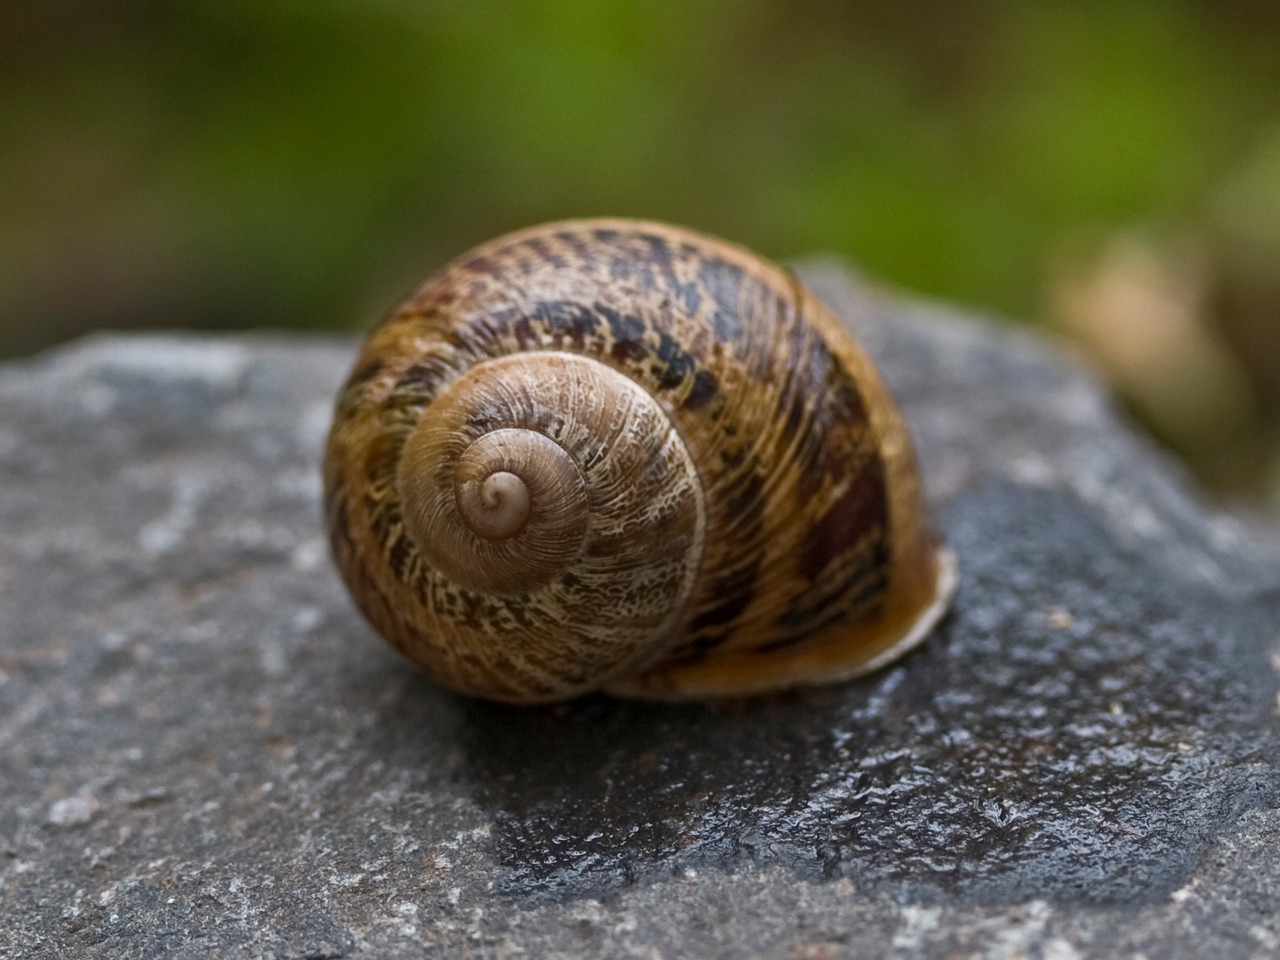 Helixaspersa (European brown snail) in Kula (Maui, Hawaii) (14July2008) (photoID:20080714_000418) Copyright ©2008 by Philip A. Thomas.  Contact imagesbypt@philipt.com for permission to use.